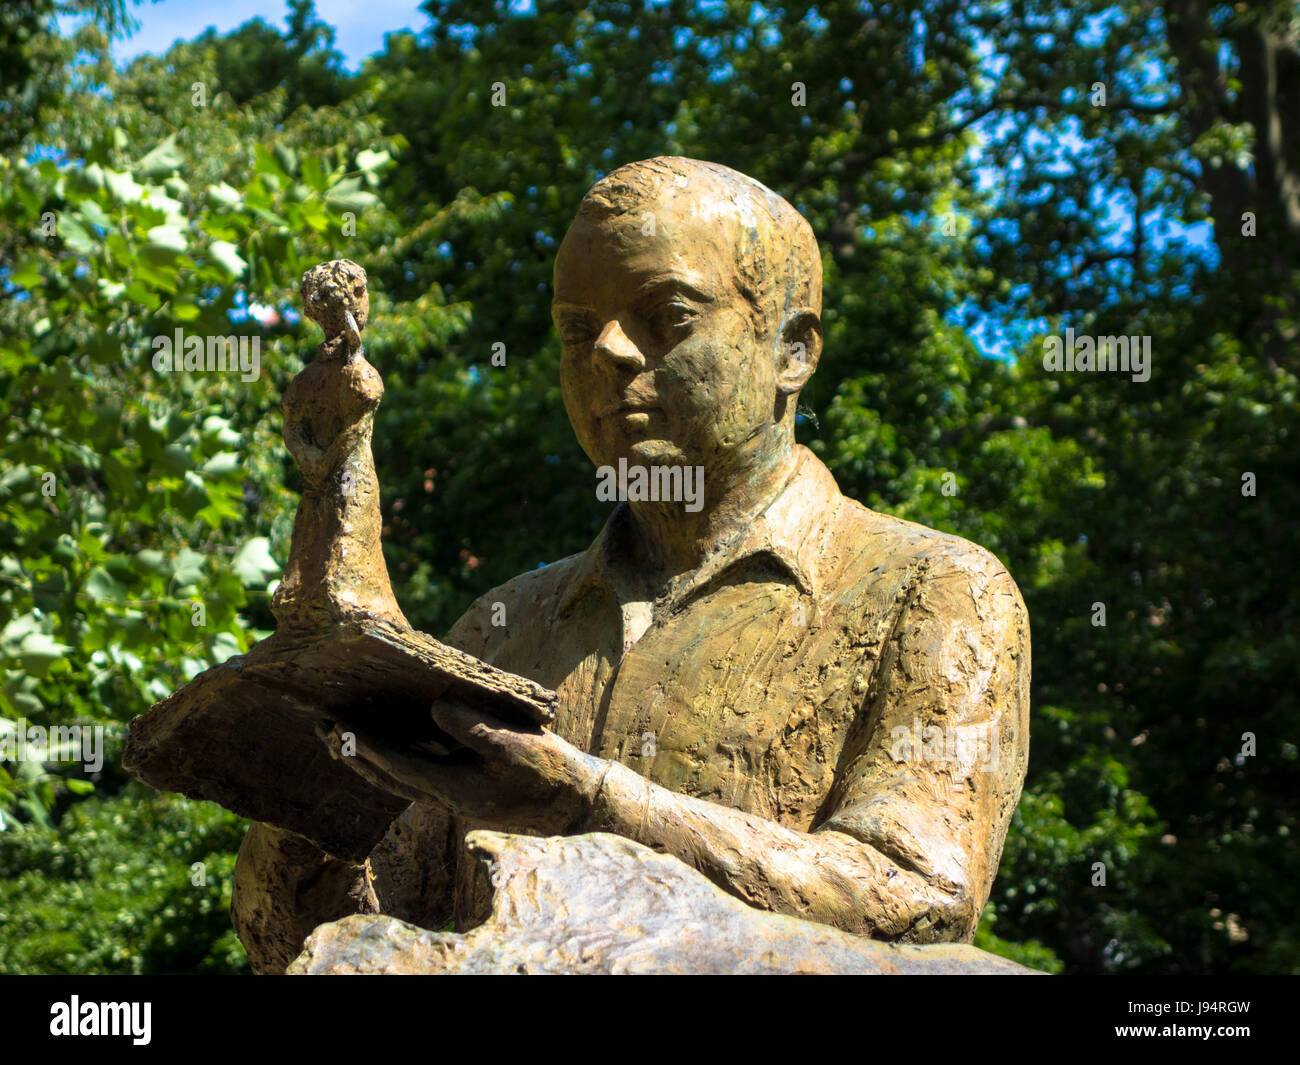 Statue of antoine de saint exupery jardin royal toulouse for Jardin royal toulouse